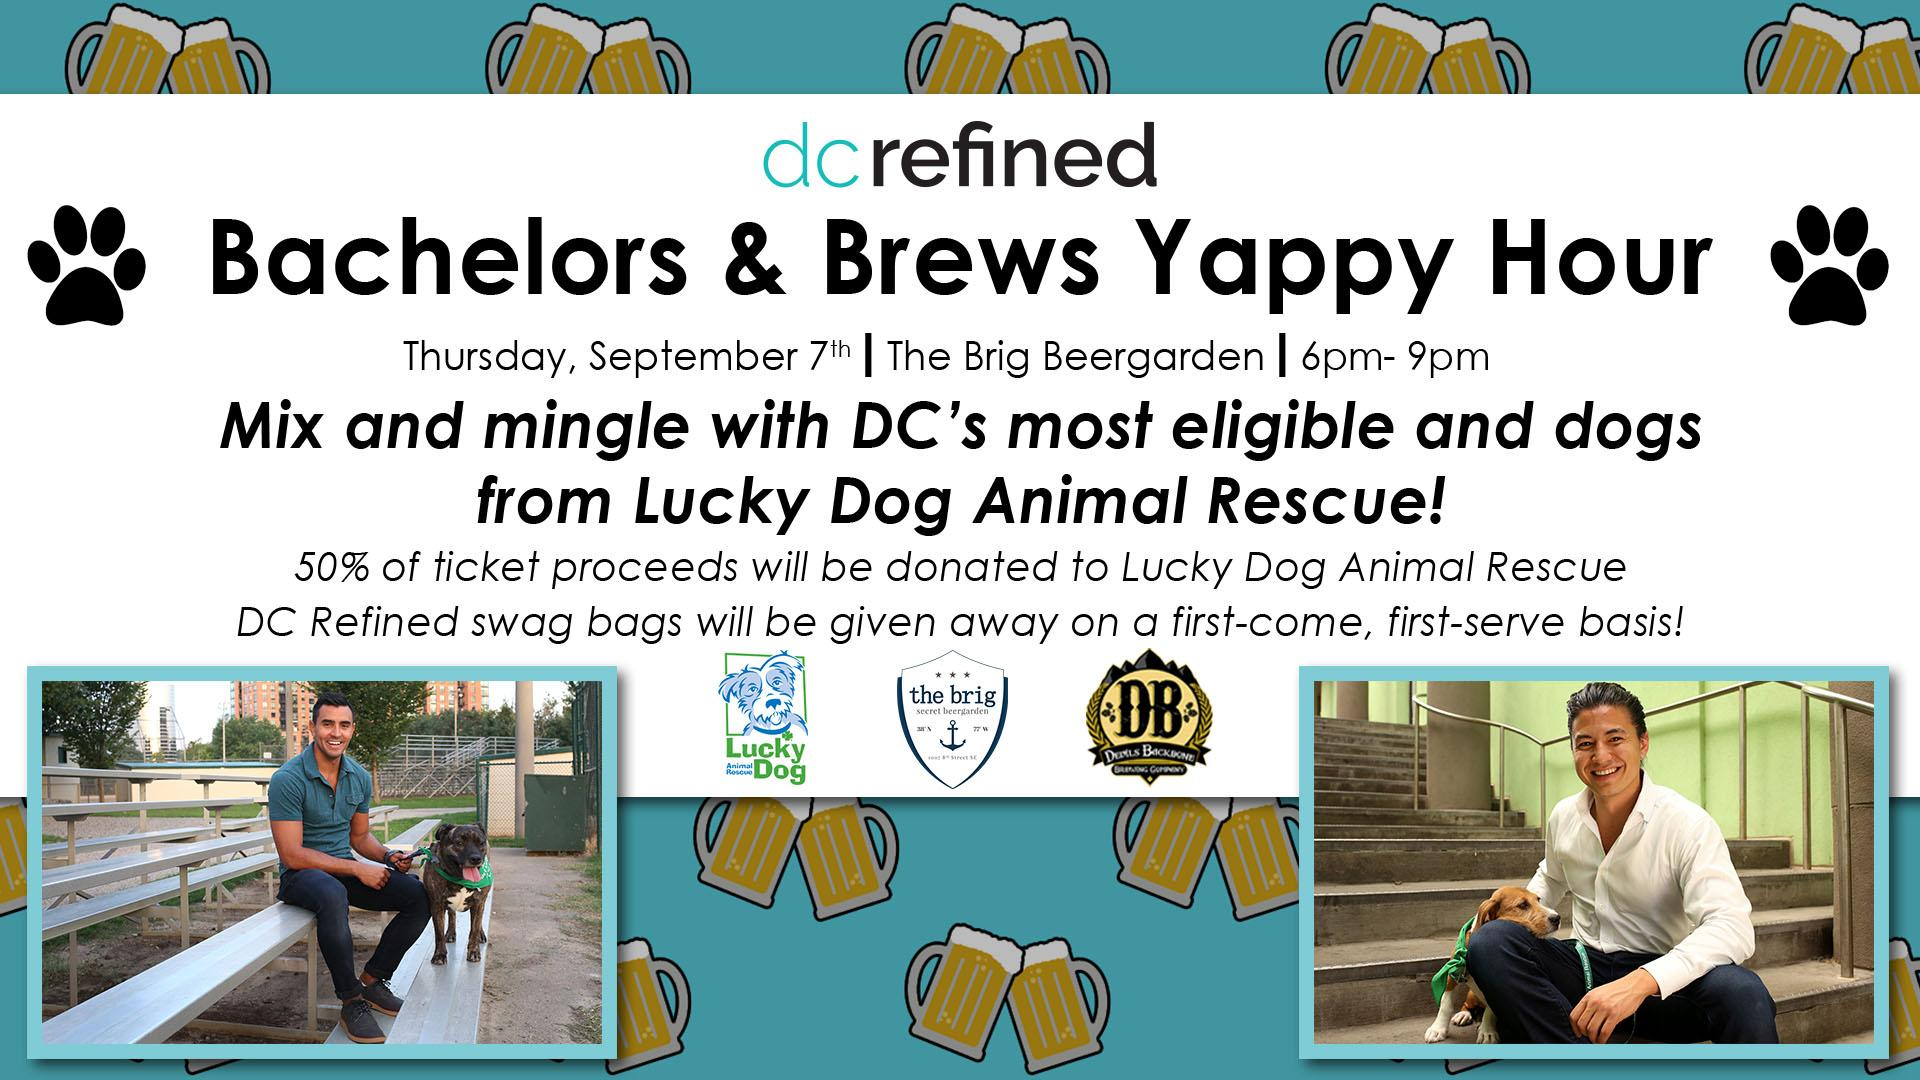 DC Refined Yappy Hour (DC Refined)